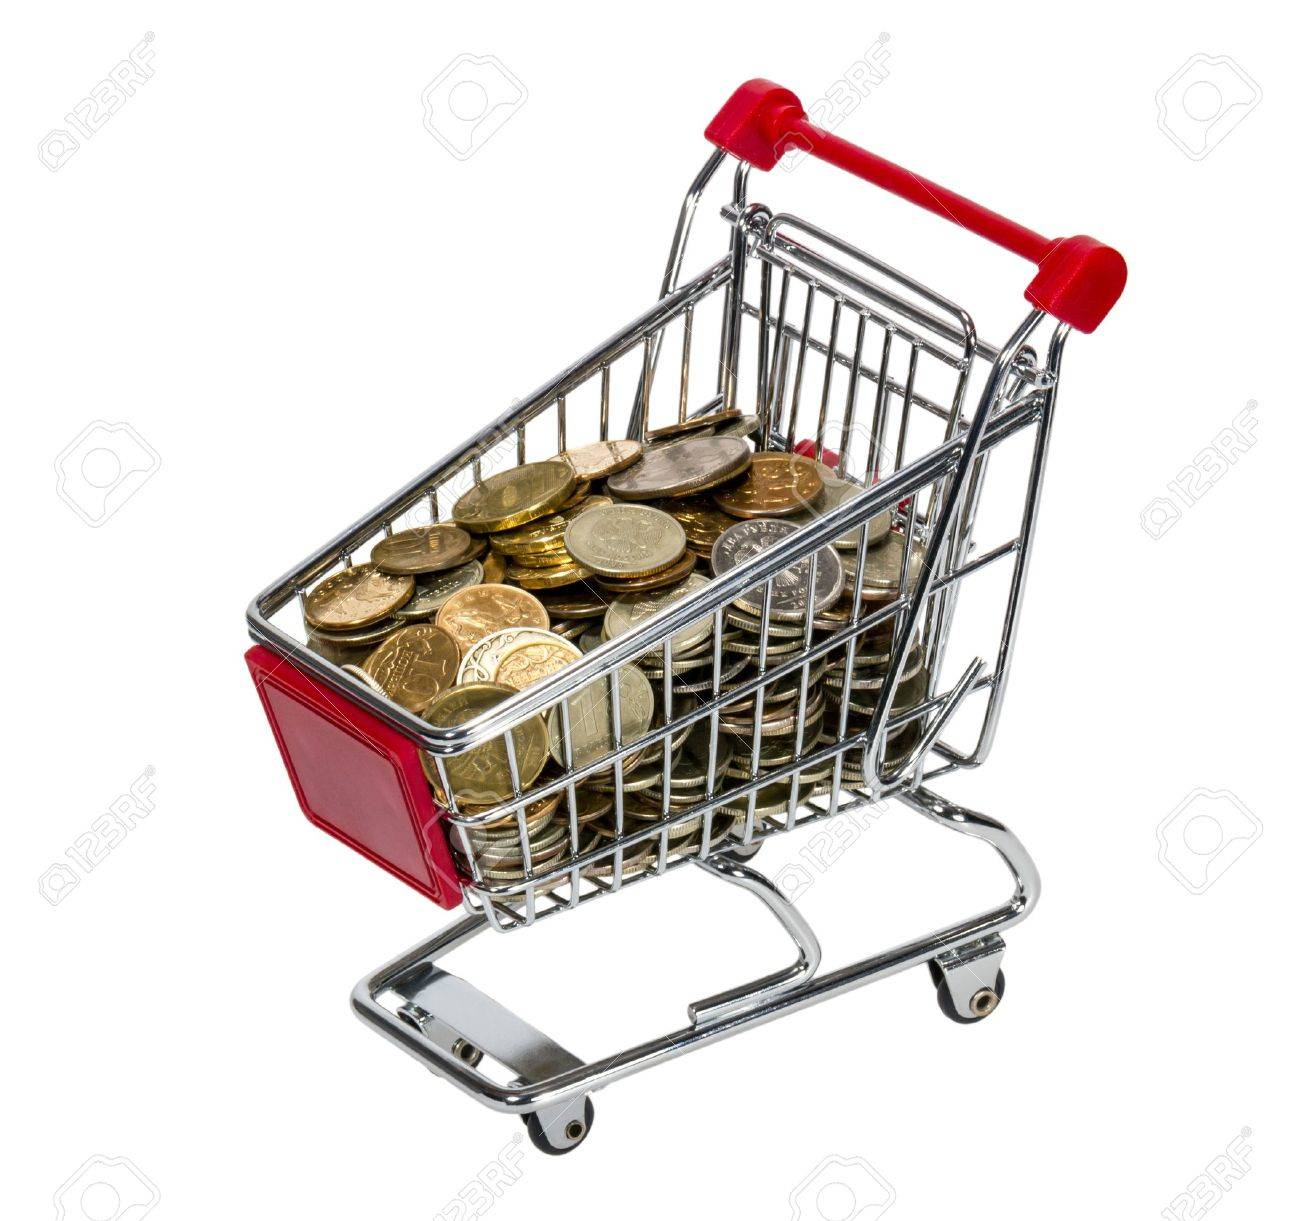 Shopping Cart with money isolated on white background Stock Photo - 12767828